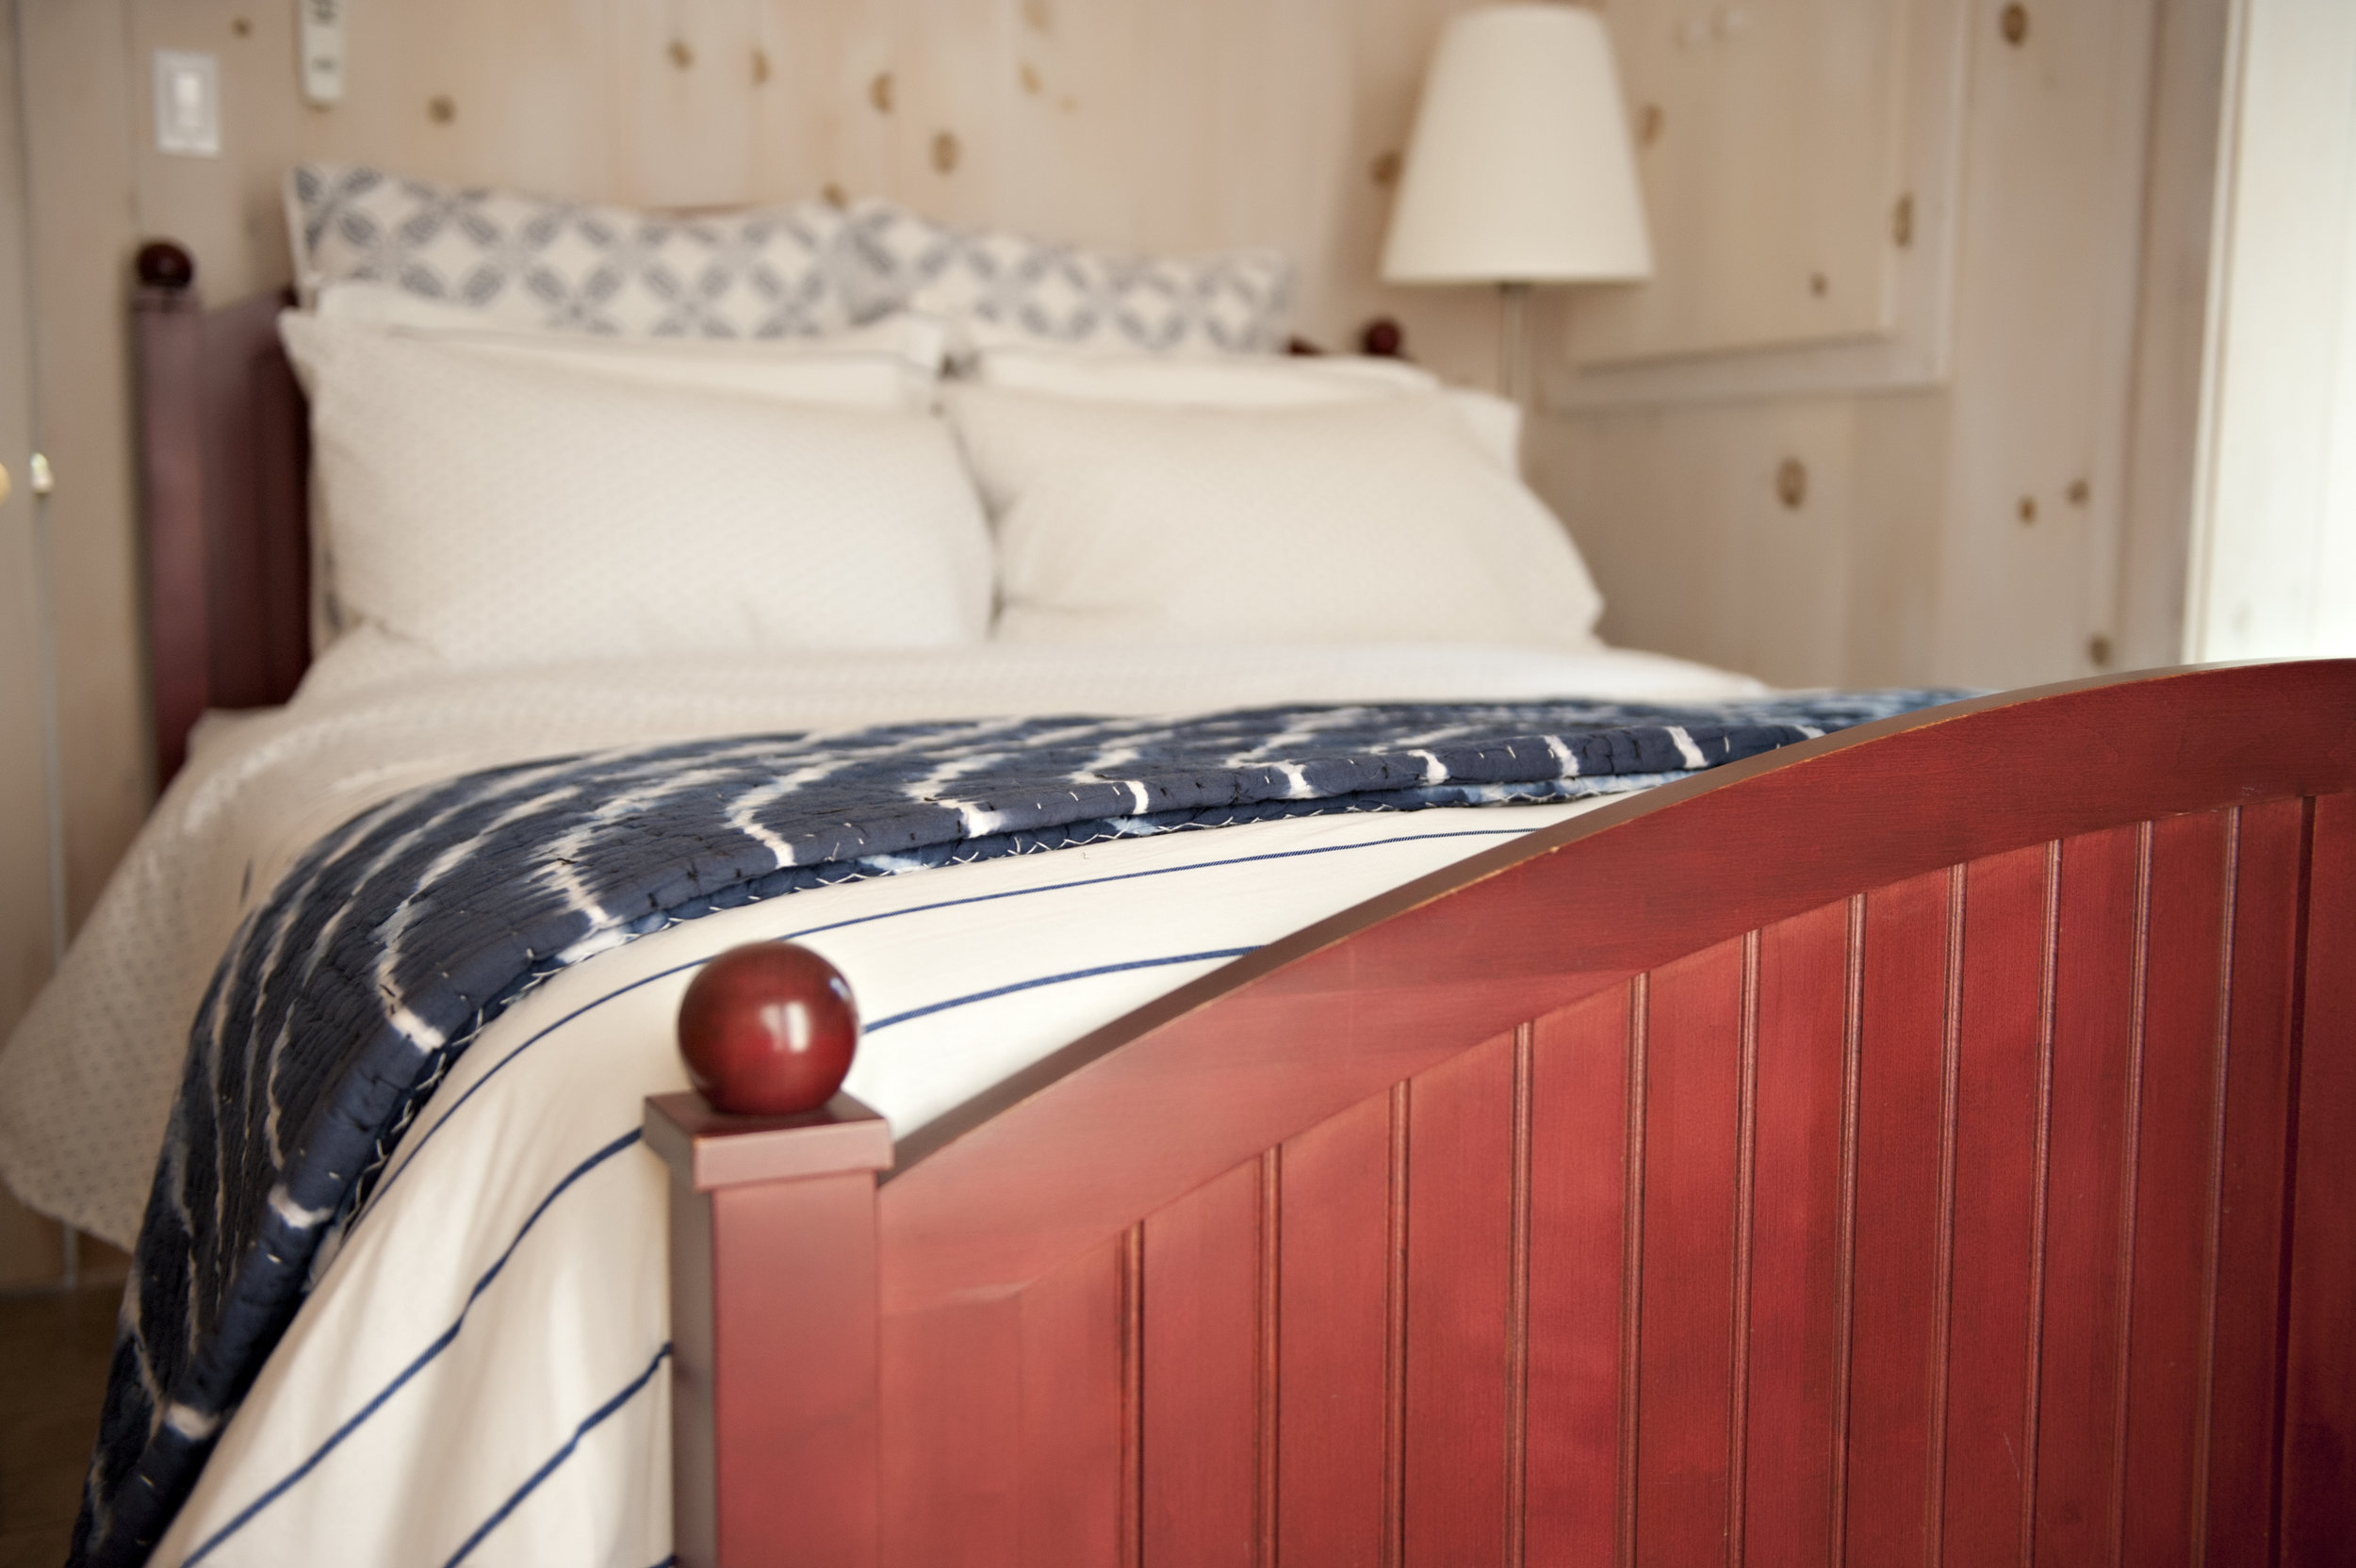 Candace-Plotz-Design-Beach-House-2-Navy-Bedding-Red-Wood-Bed